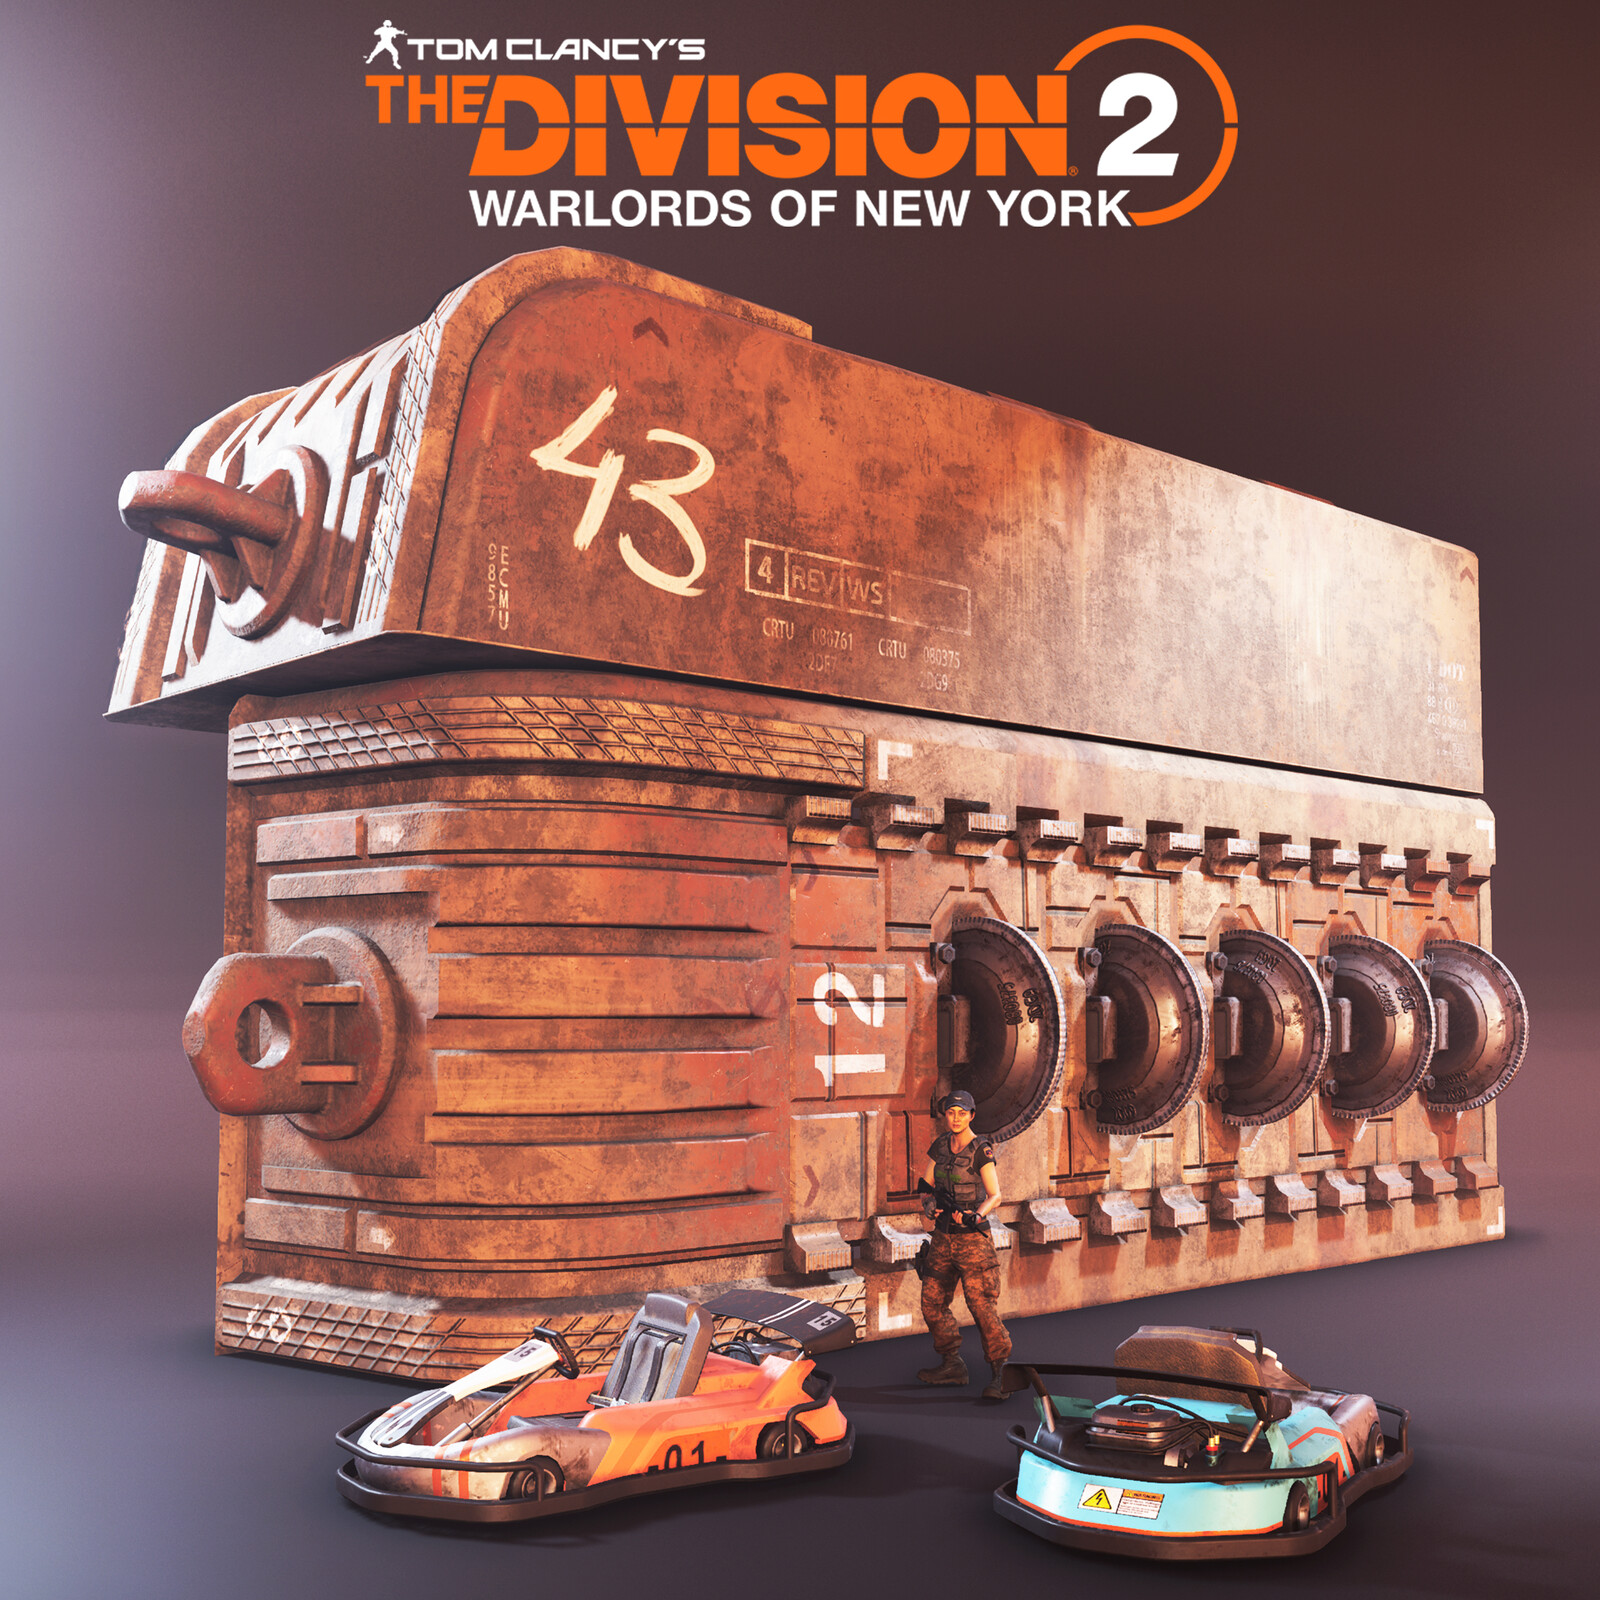 Division 2: Warlords of New York Props